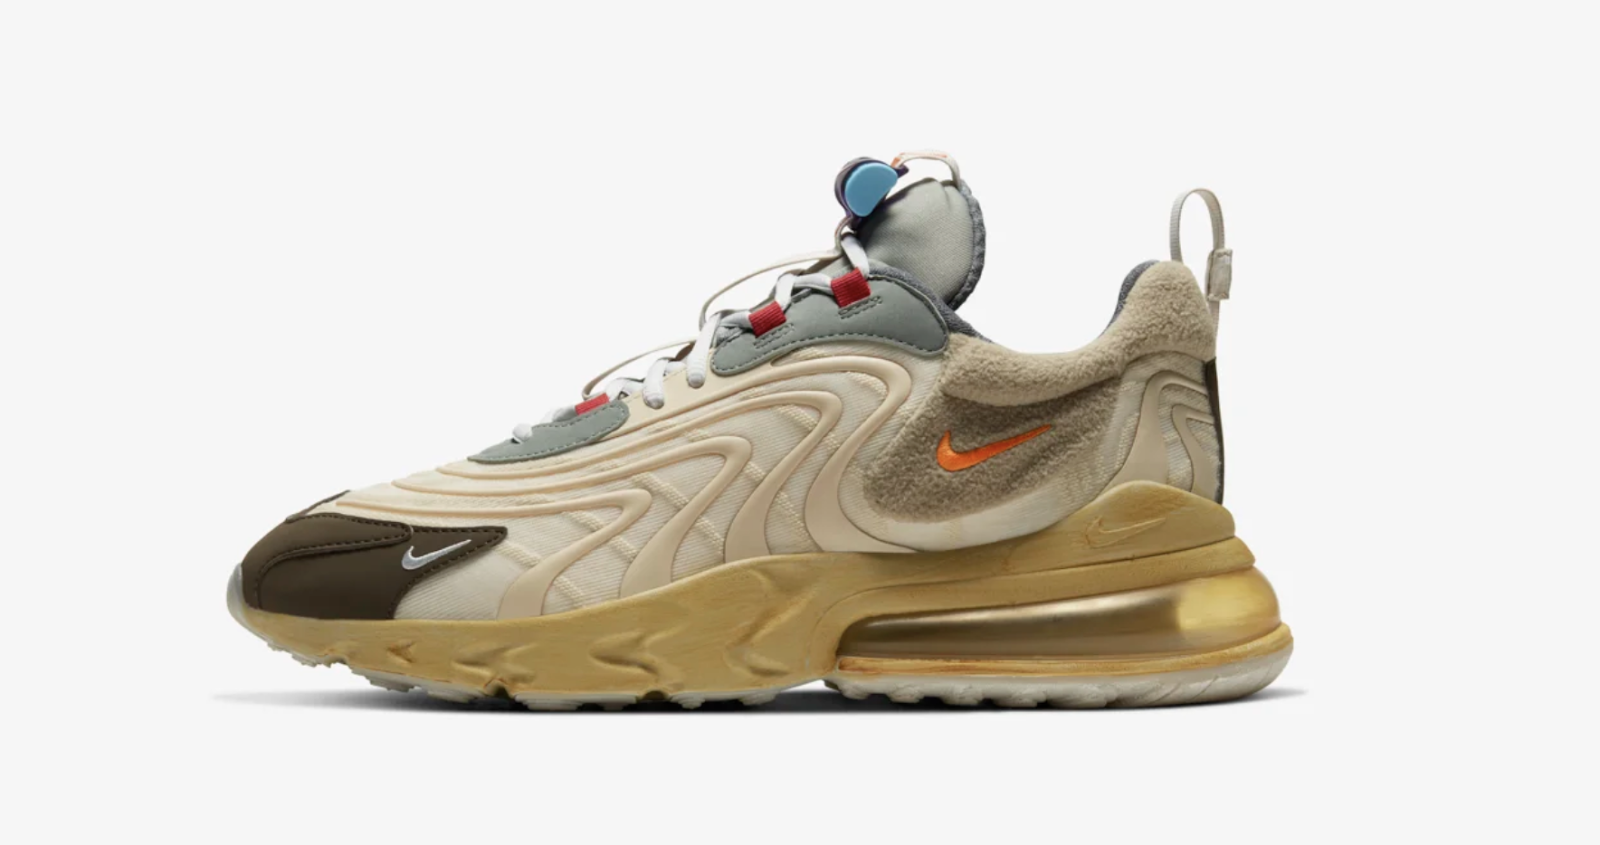 TRAVIS SCOTT NIKE AIR MAX 270 REACT — Rarest Sneaker 2020